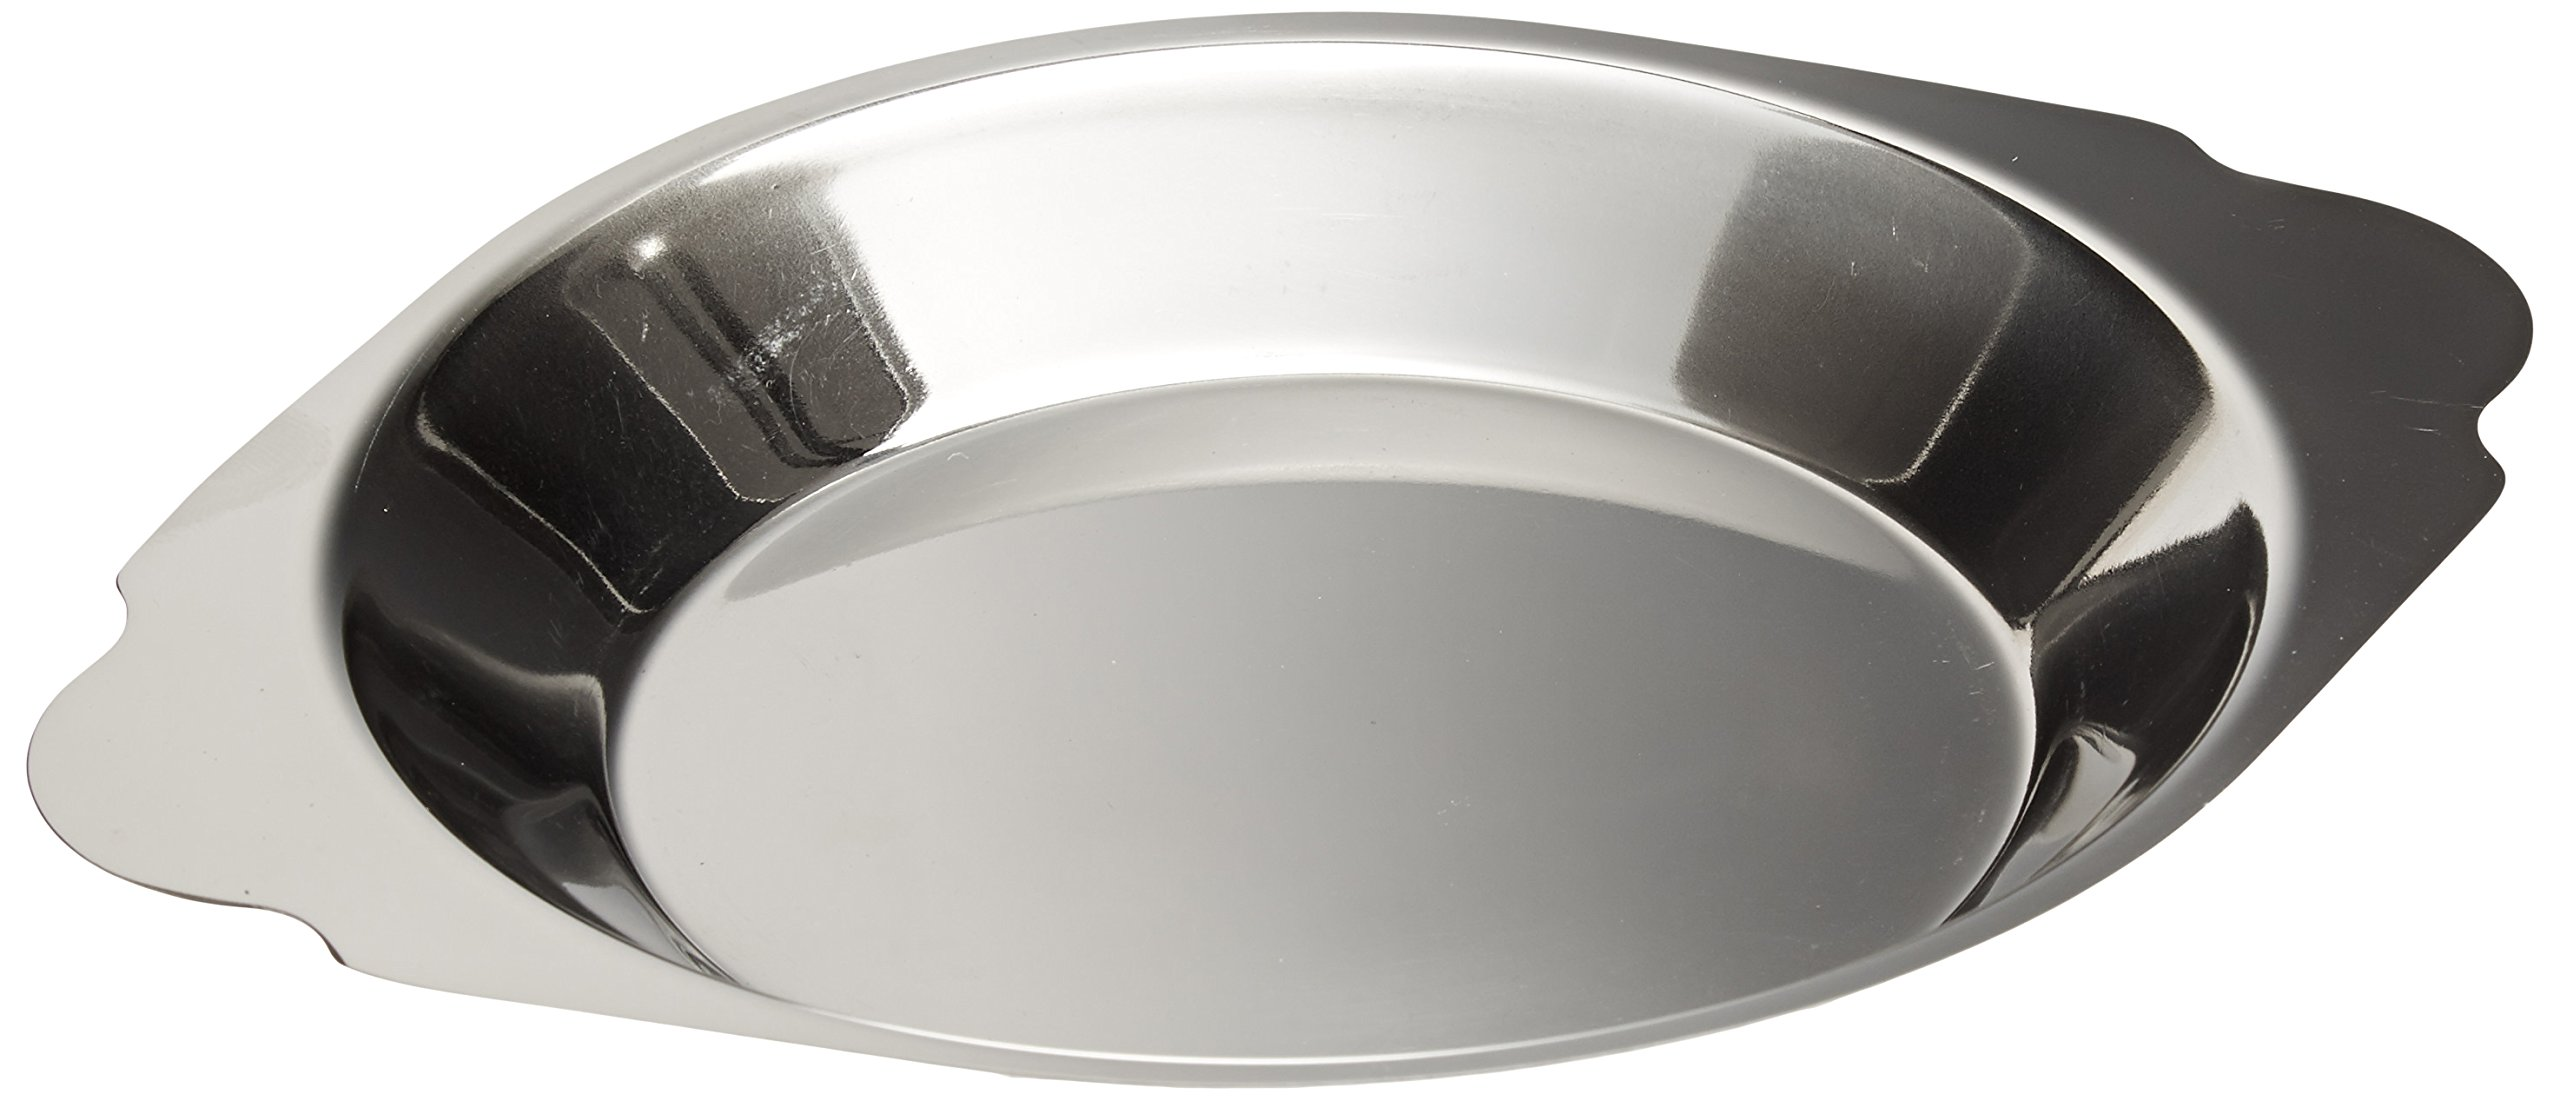 Royal Industries Round Au Gratin, Stainless Steel, 10 oz, Silver by Royal Industries